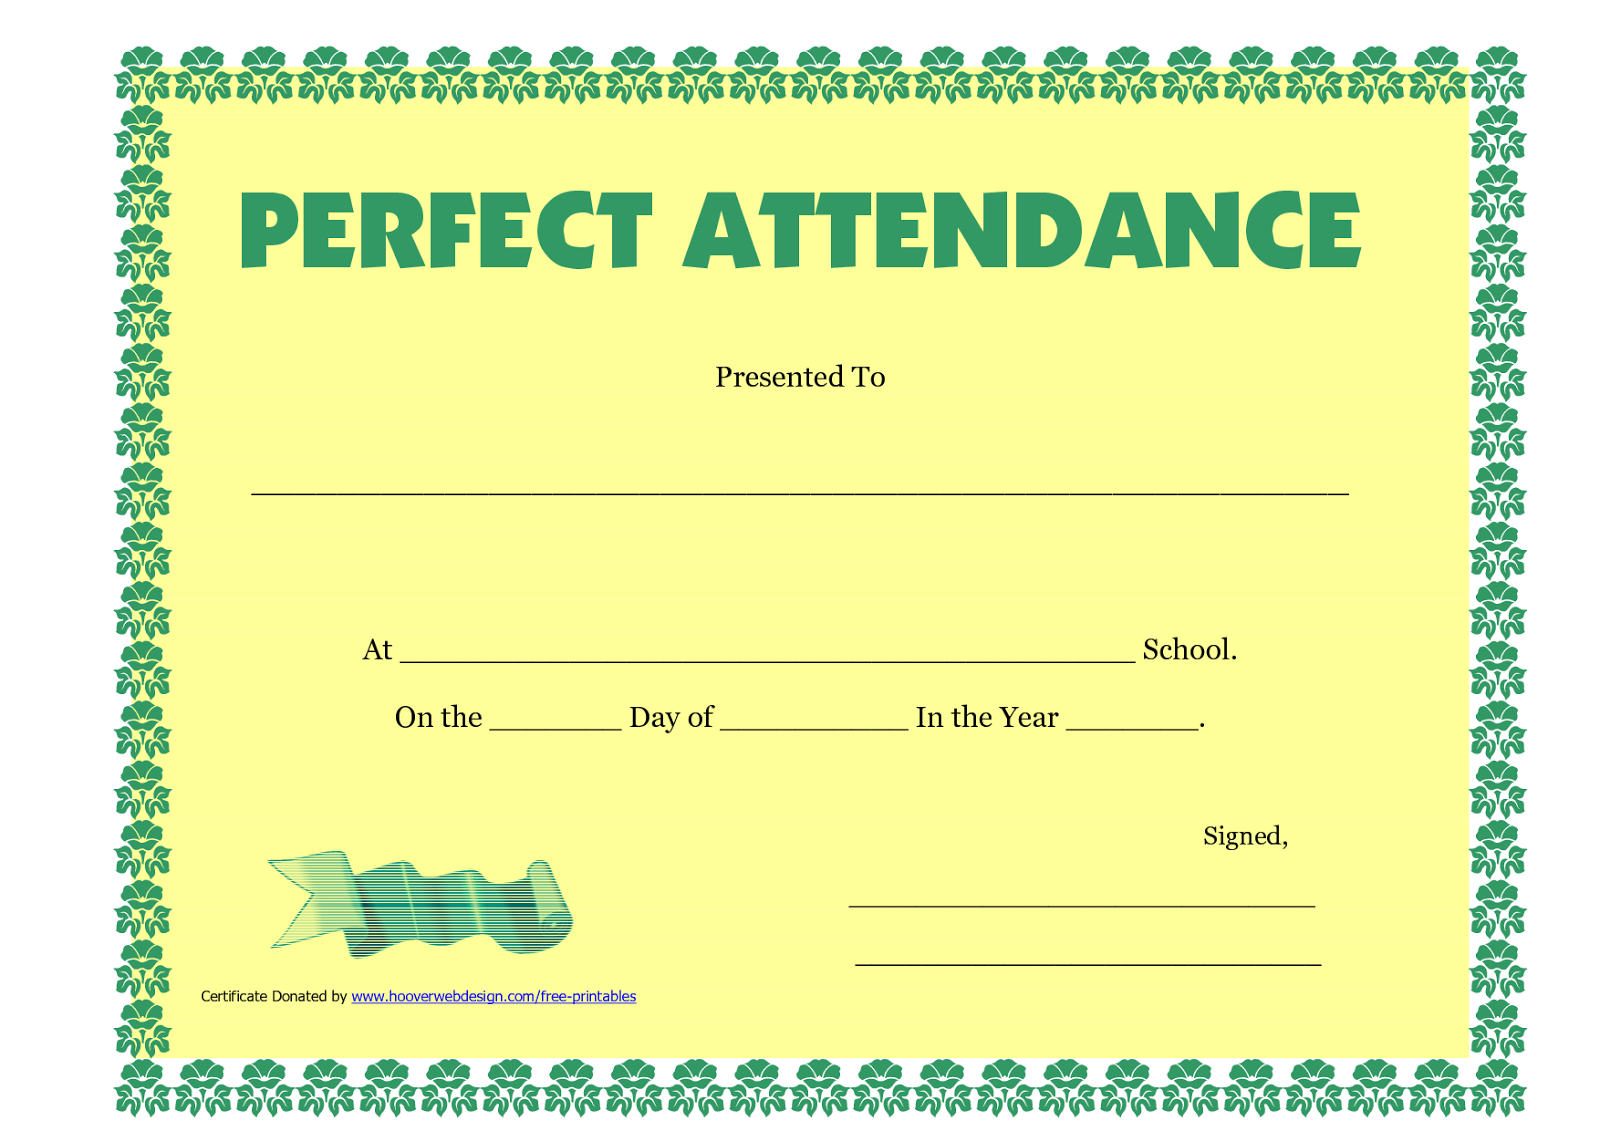 sample certificate of attendance template, perfect attendance certificate template, perfect attendance template word, perfect attendance certificate printable, free editable printable certificates, certificate of attendance free templates, microsoft perfect attendance award template, editable perfect attendance award template, employee perfect attendance certificate template